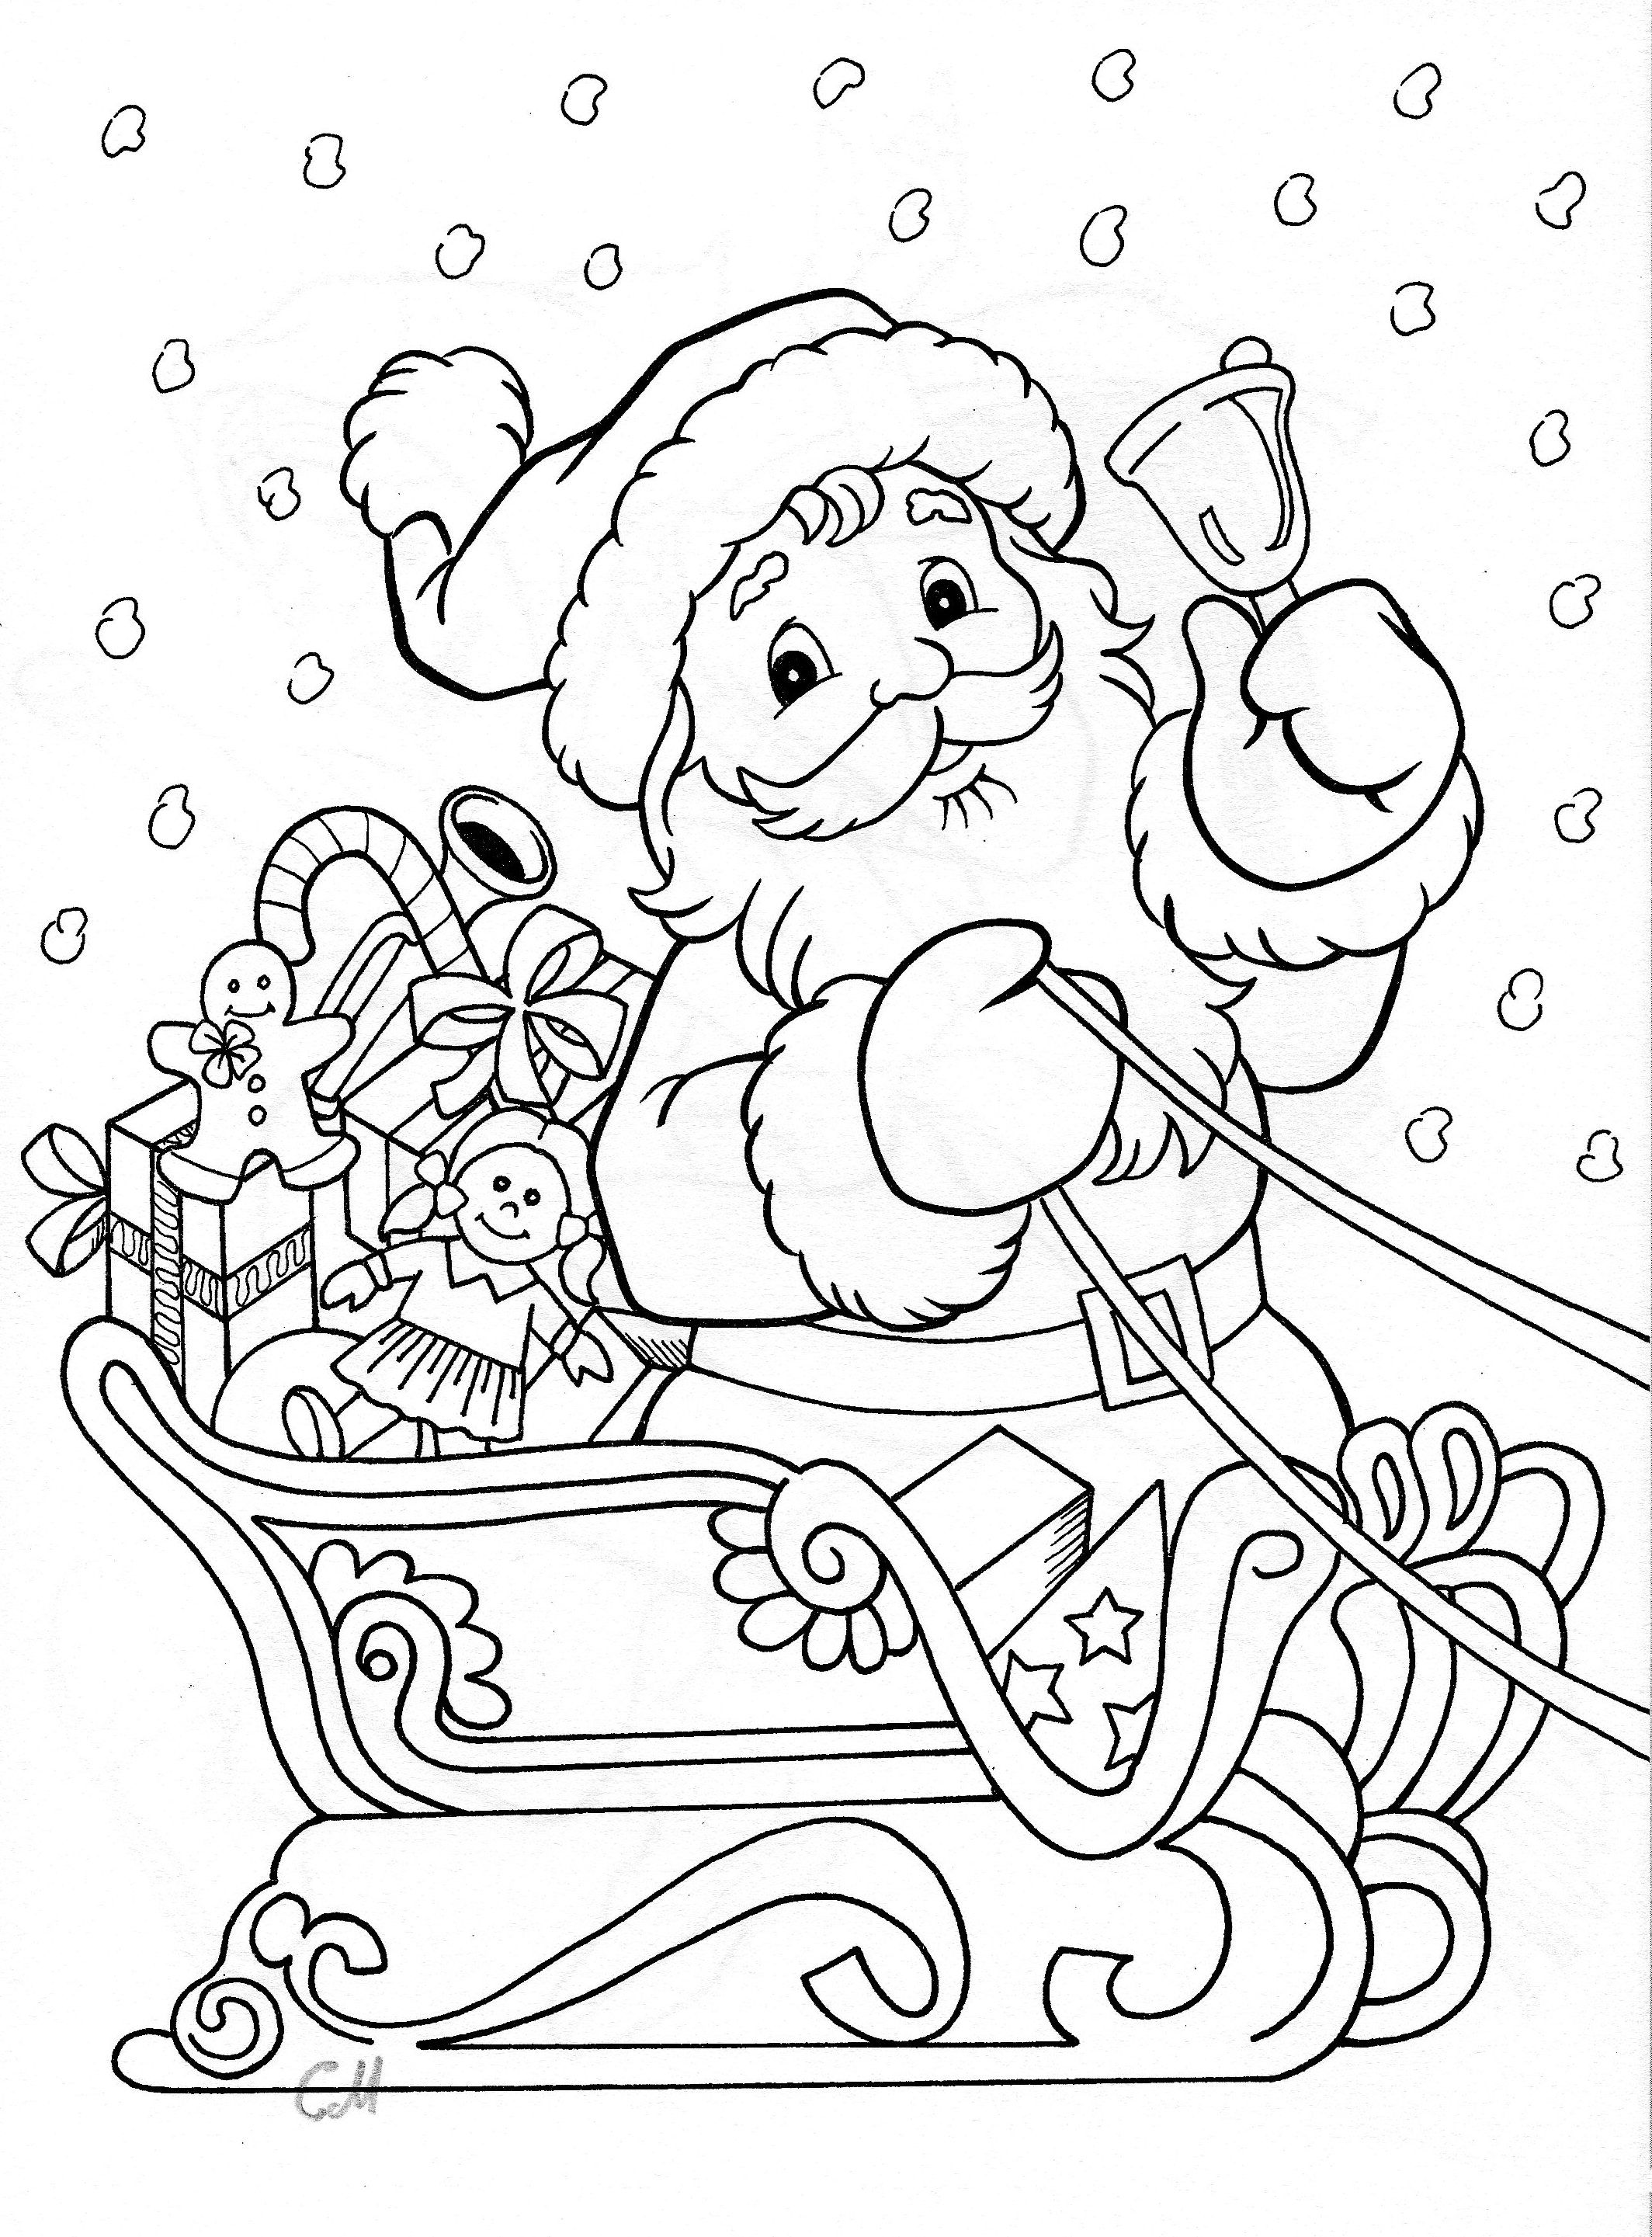 Santa Colored In With Coloring Fotocopiar Pinterest Christmas Colors